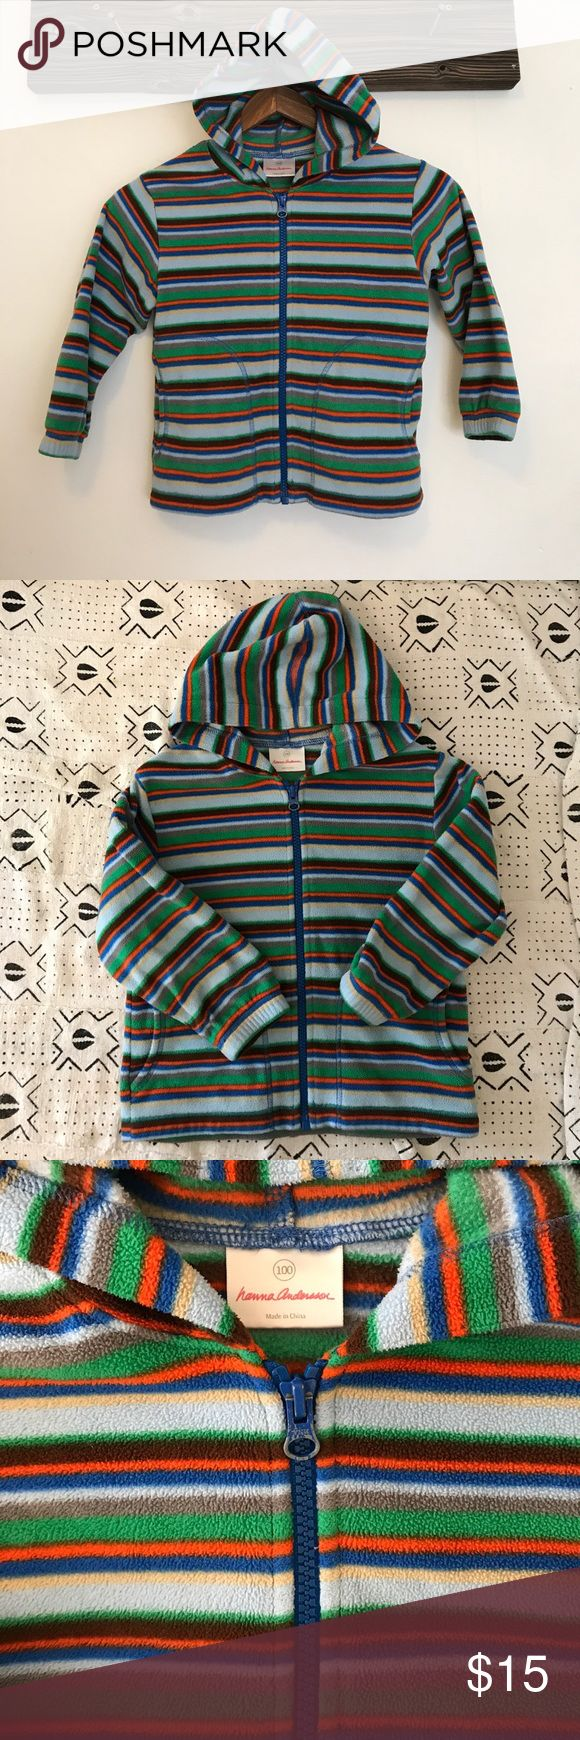 Hanna Anderson fleece striped zip up hoodie My son lived in this hoodie since it's super soft and cozy, it's way to wash and has pockets. There's no stains or rips, it's in great condition with lots of life left. It's sized at a Hanna Anderson 100. Hanna Andersson Shirts & Tops Sweatshirts & Hoodies